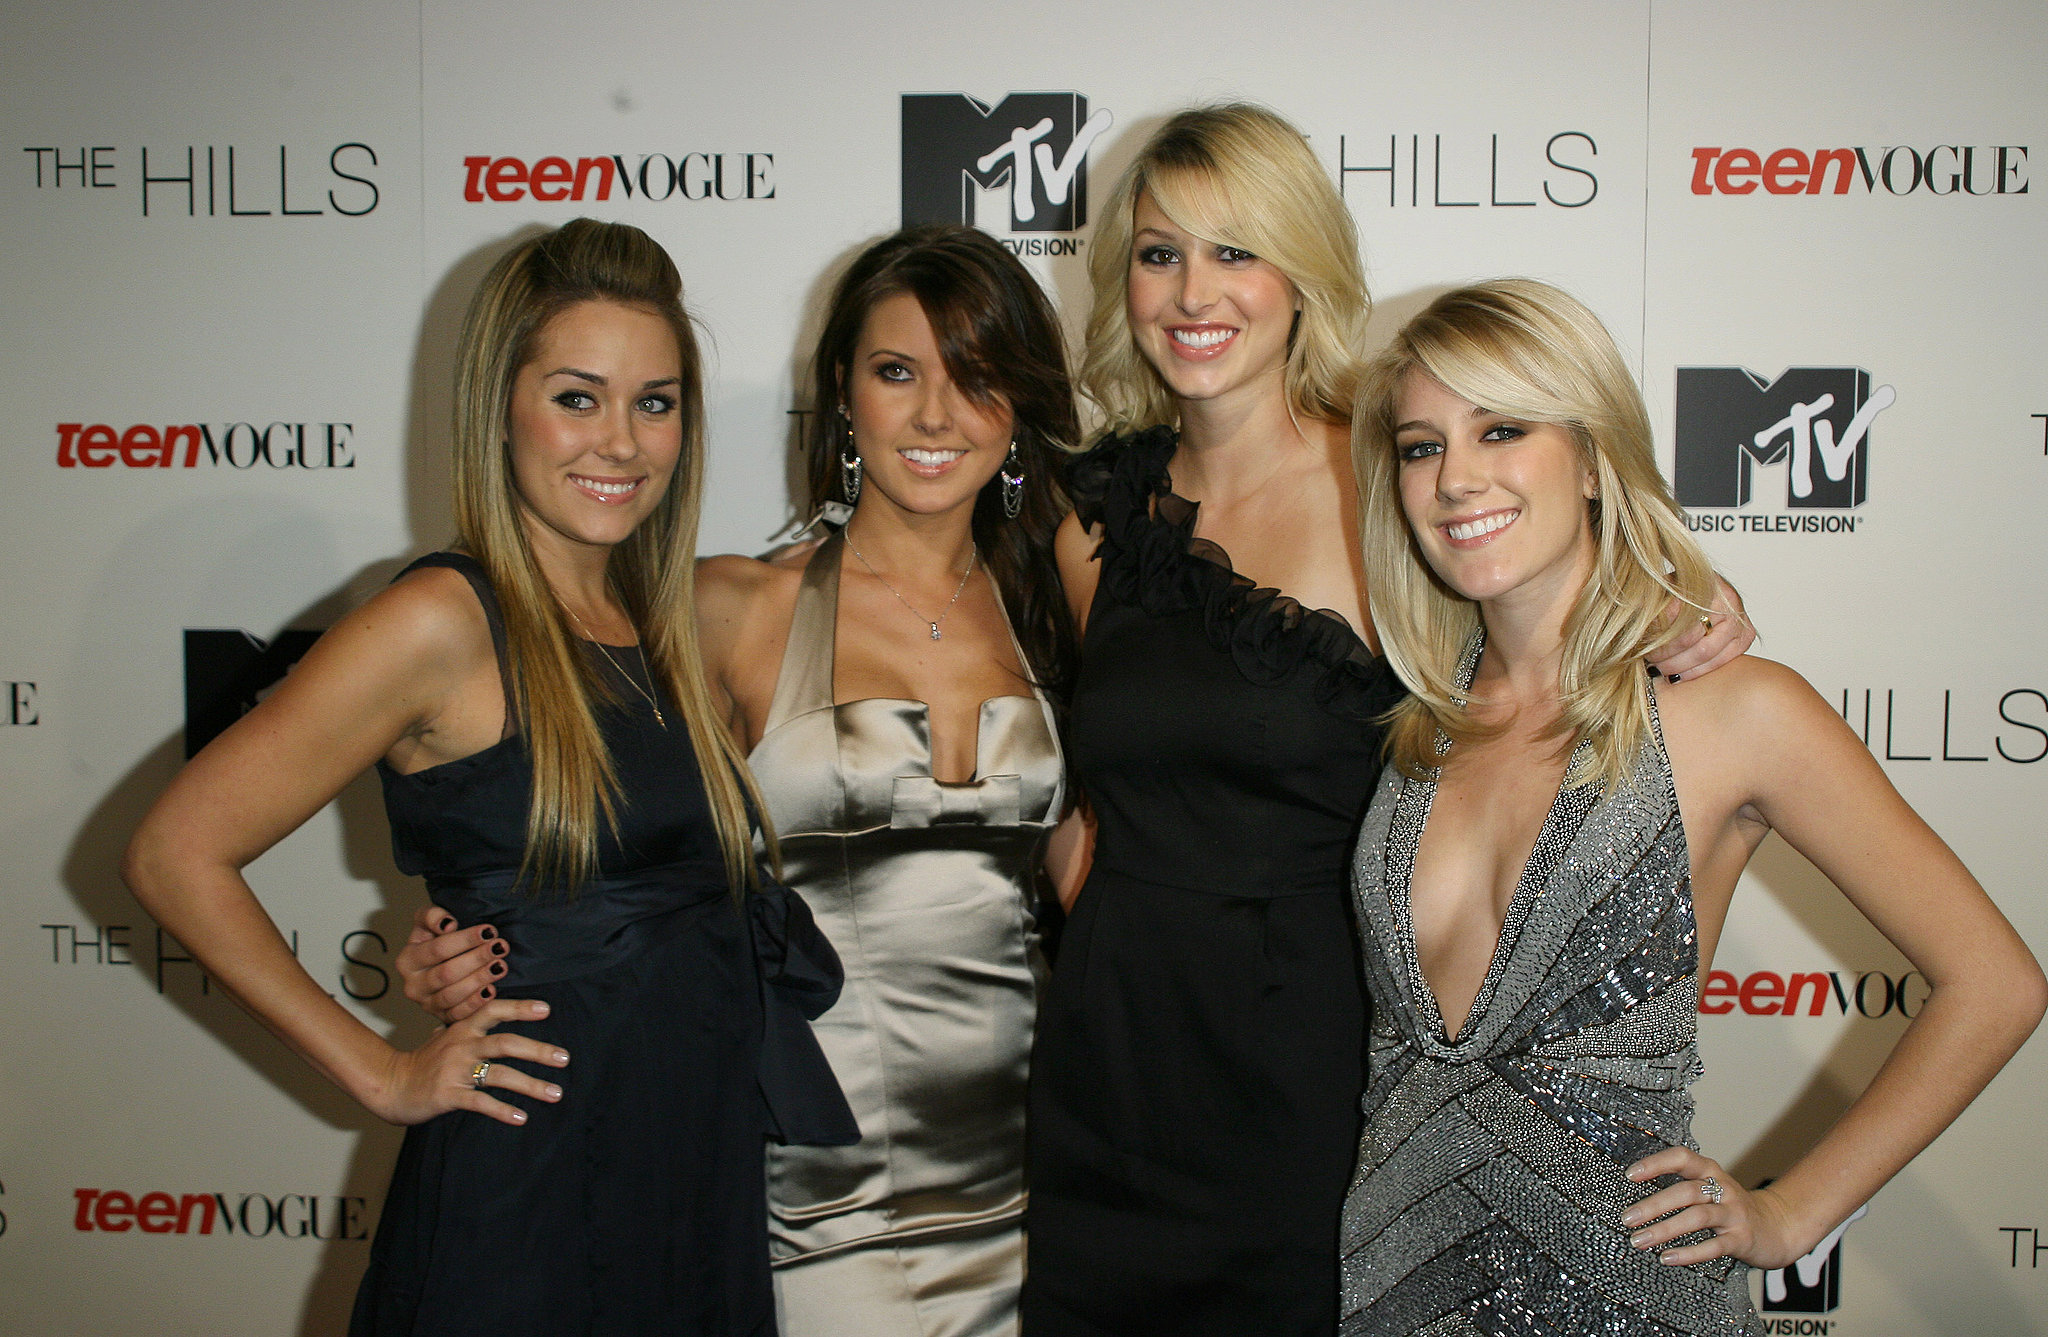 Lauren Conrad, Audrina Patridge, Whitney Port, and Heidi Montag celebrated the second season of The Hills in LA in January 2007.